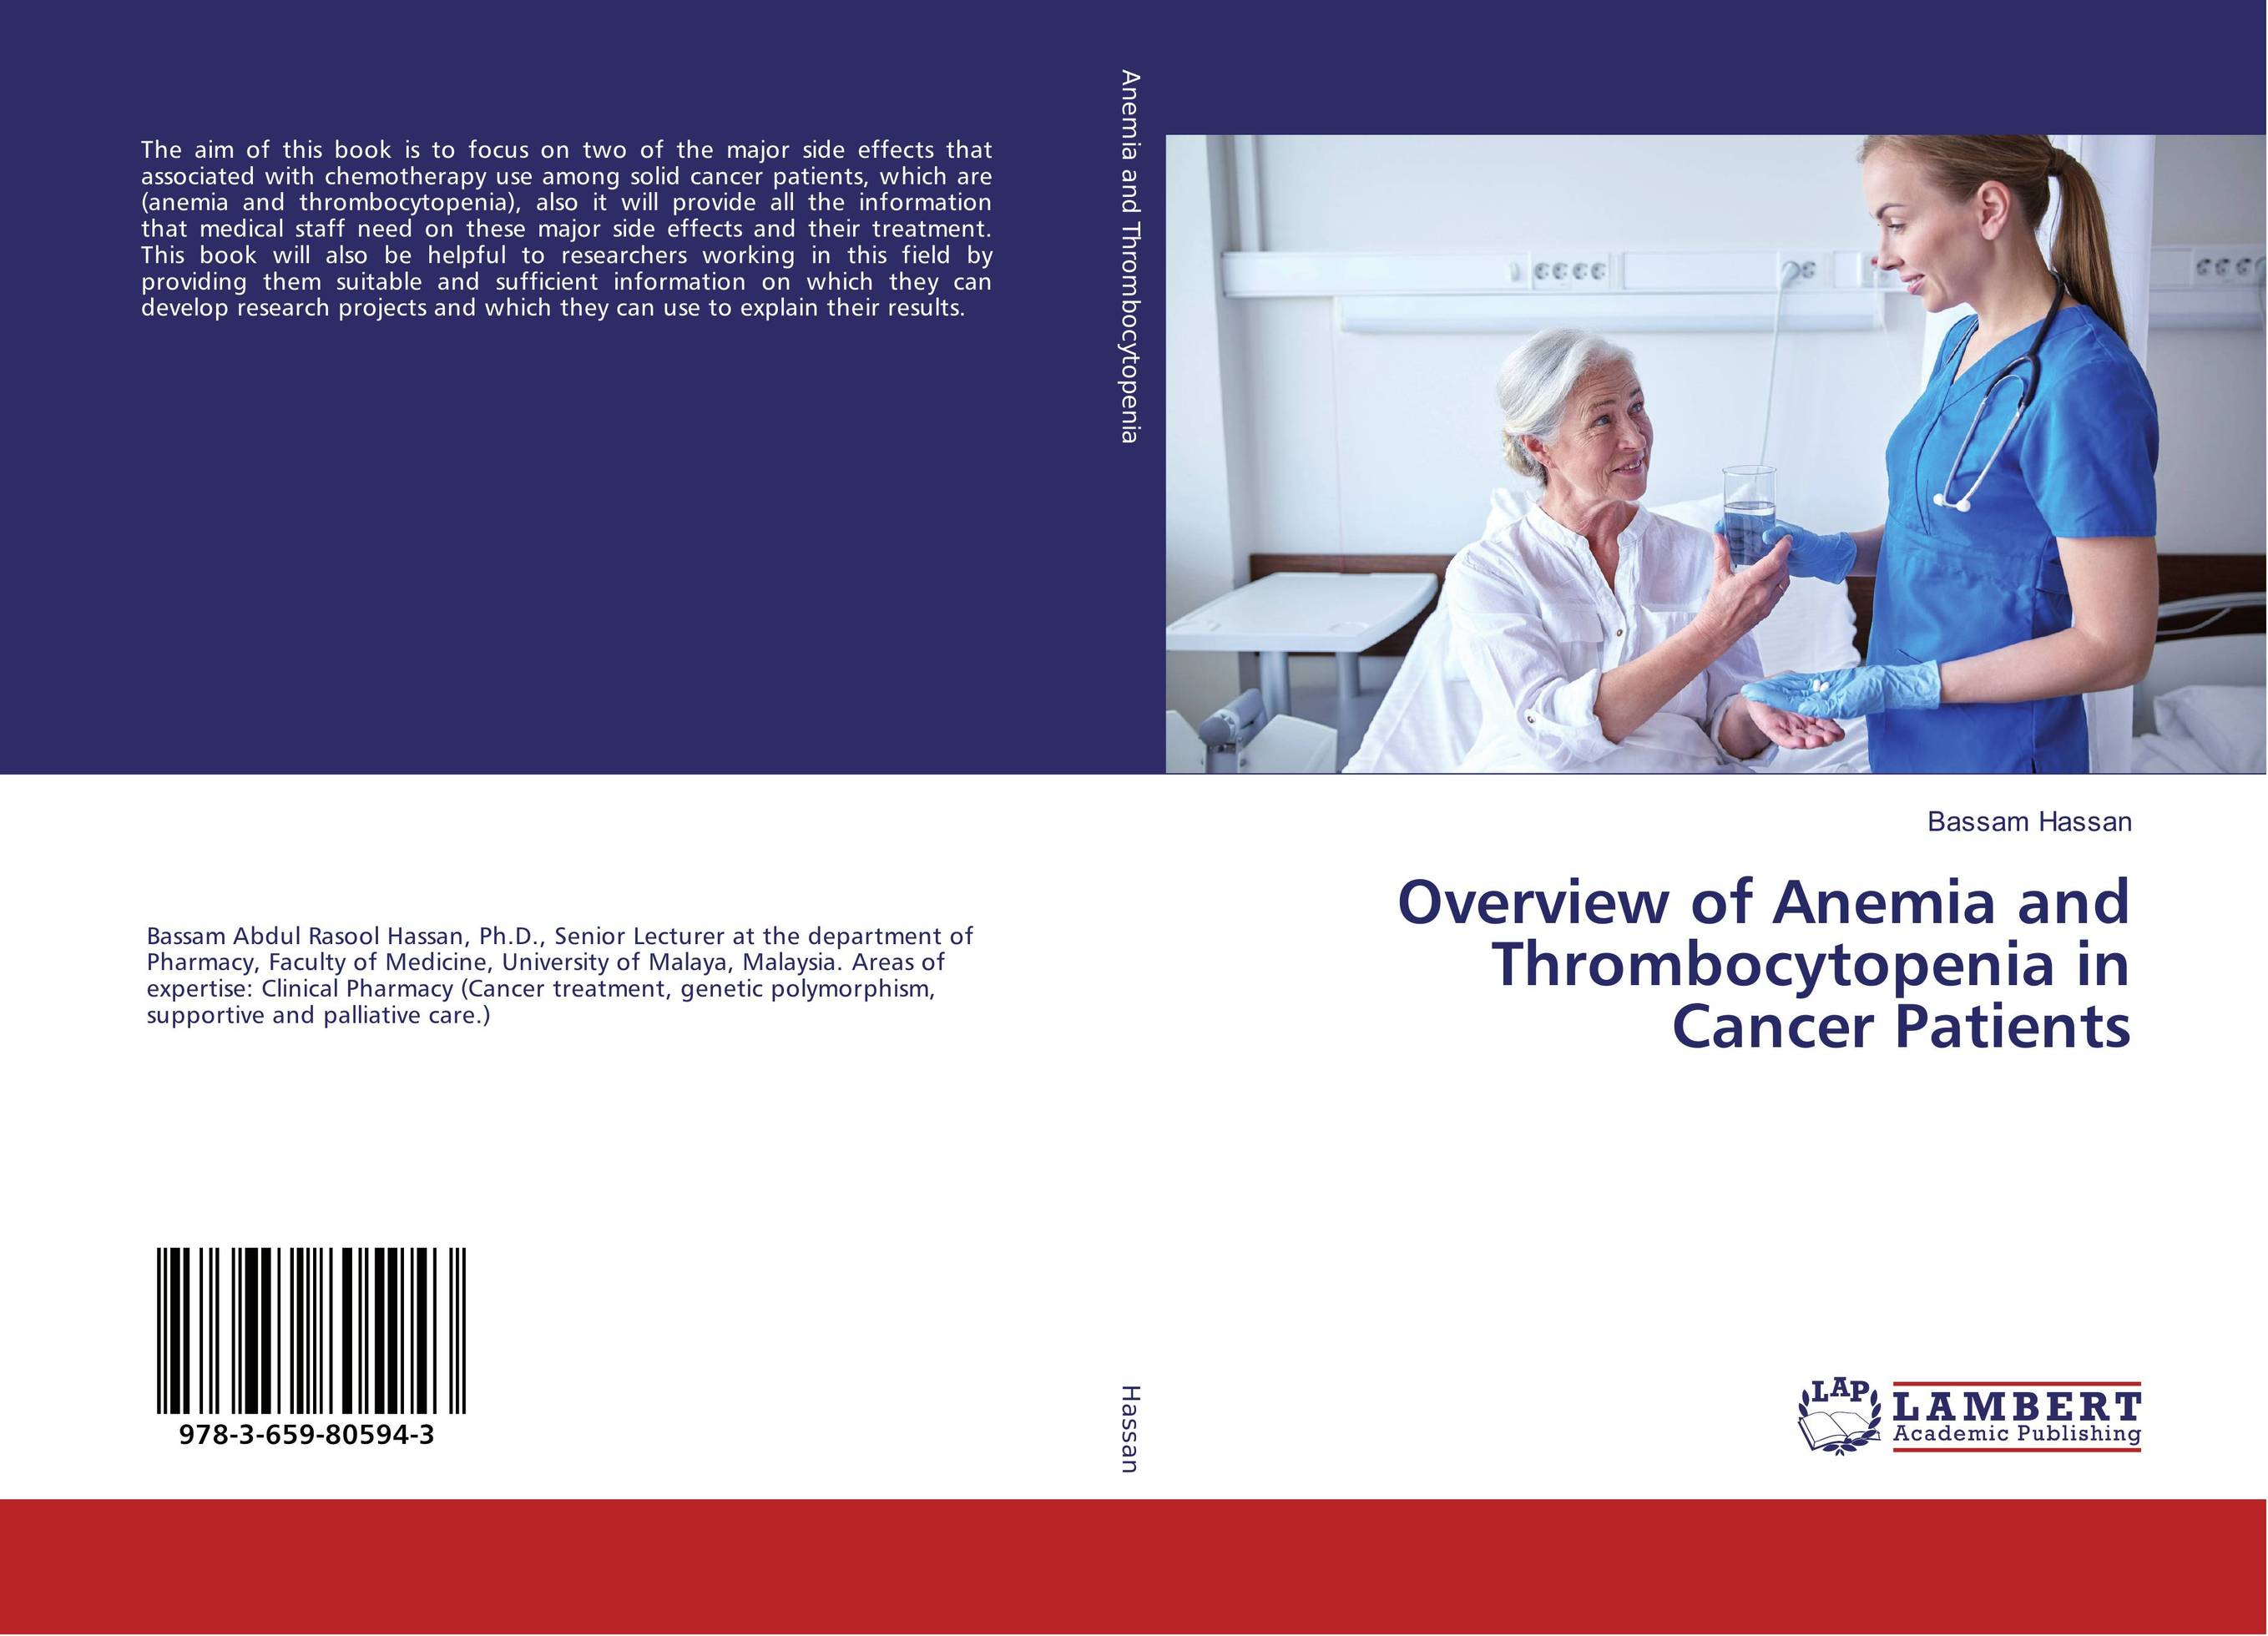 Overview of Anemia and Thrombocytopenia in Cancer Patients цена